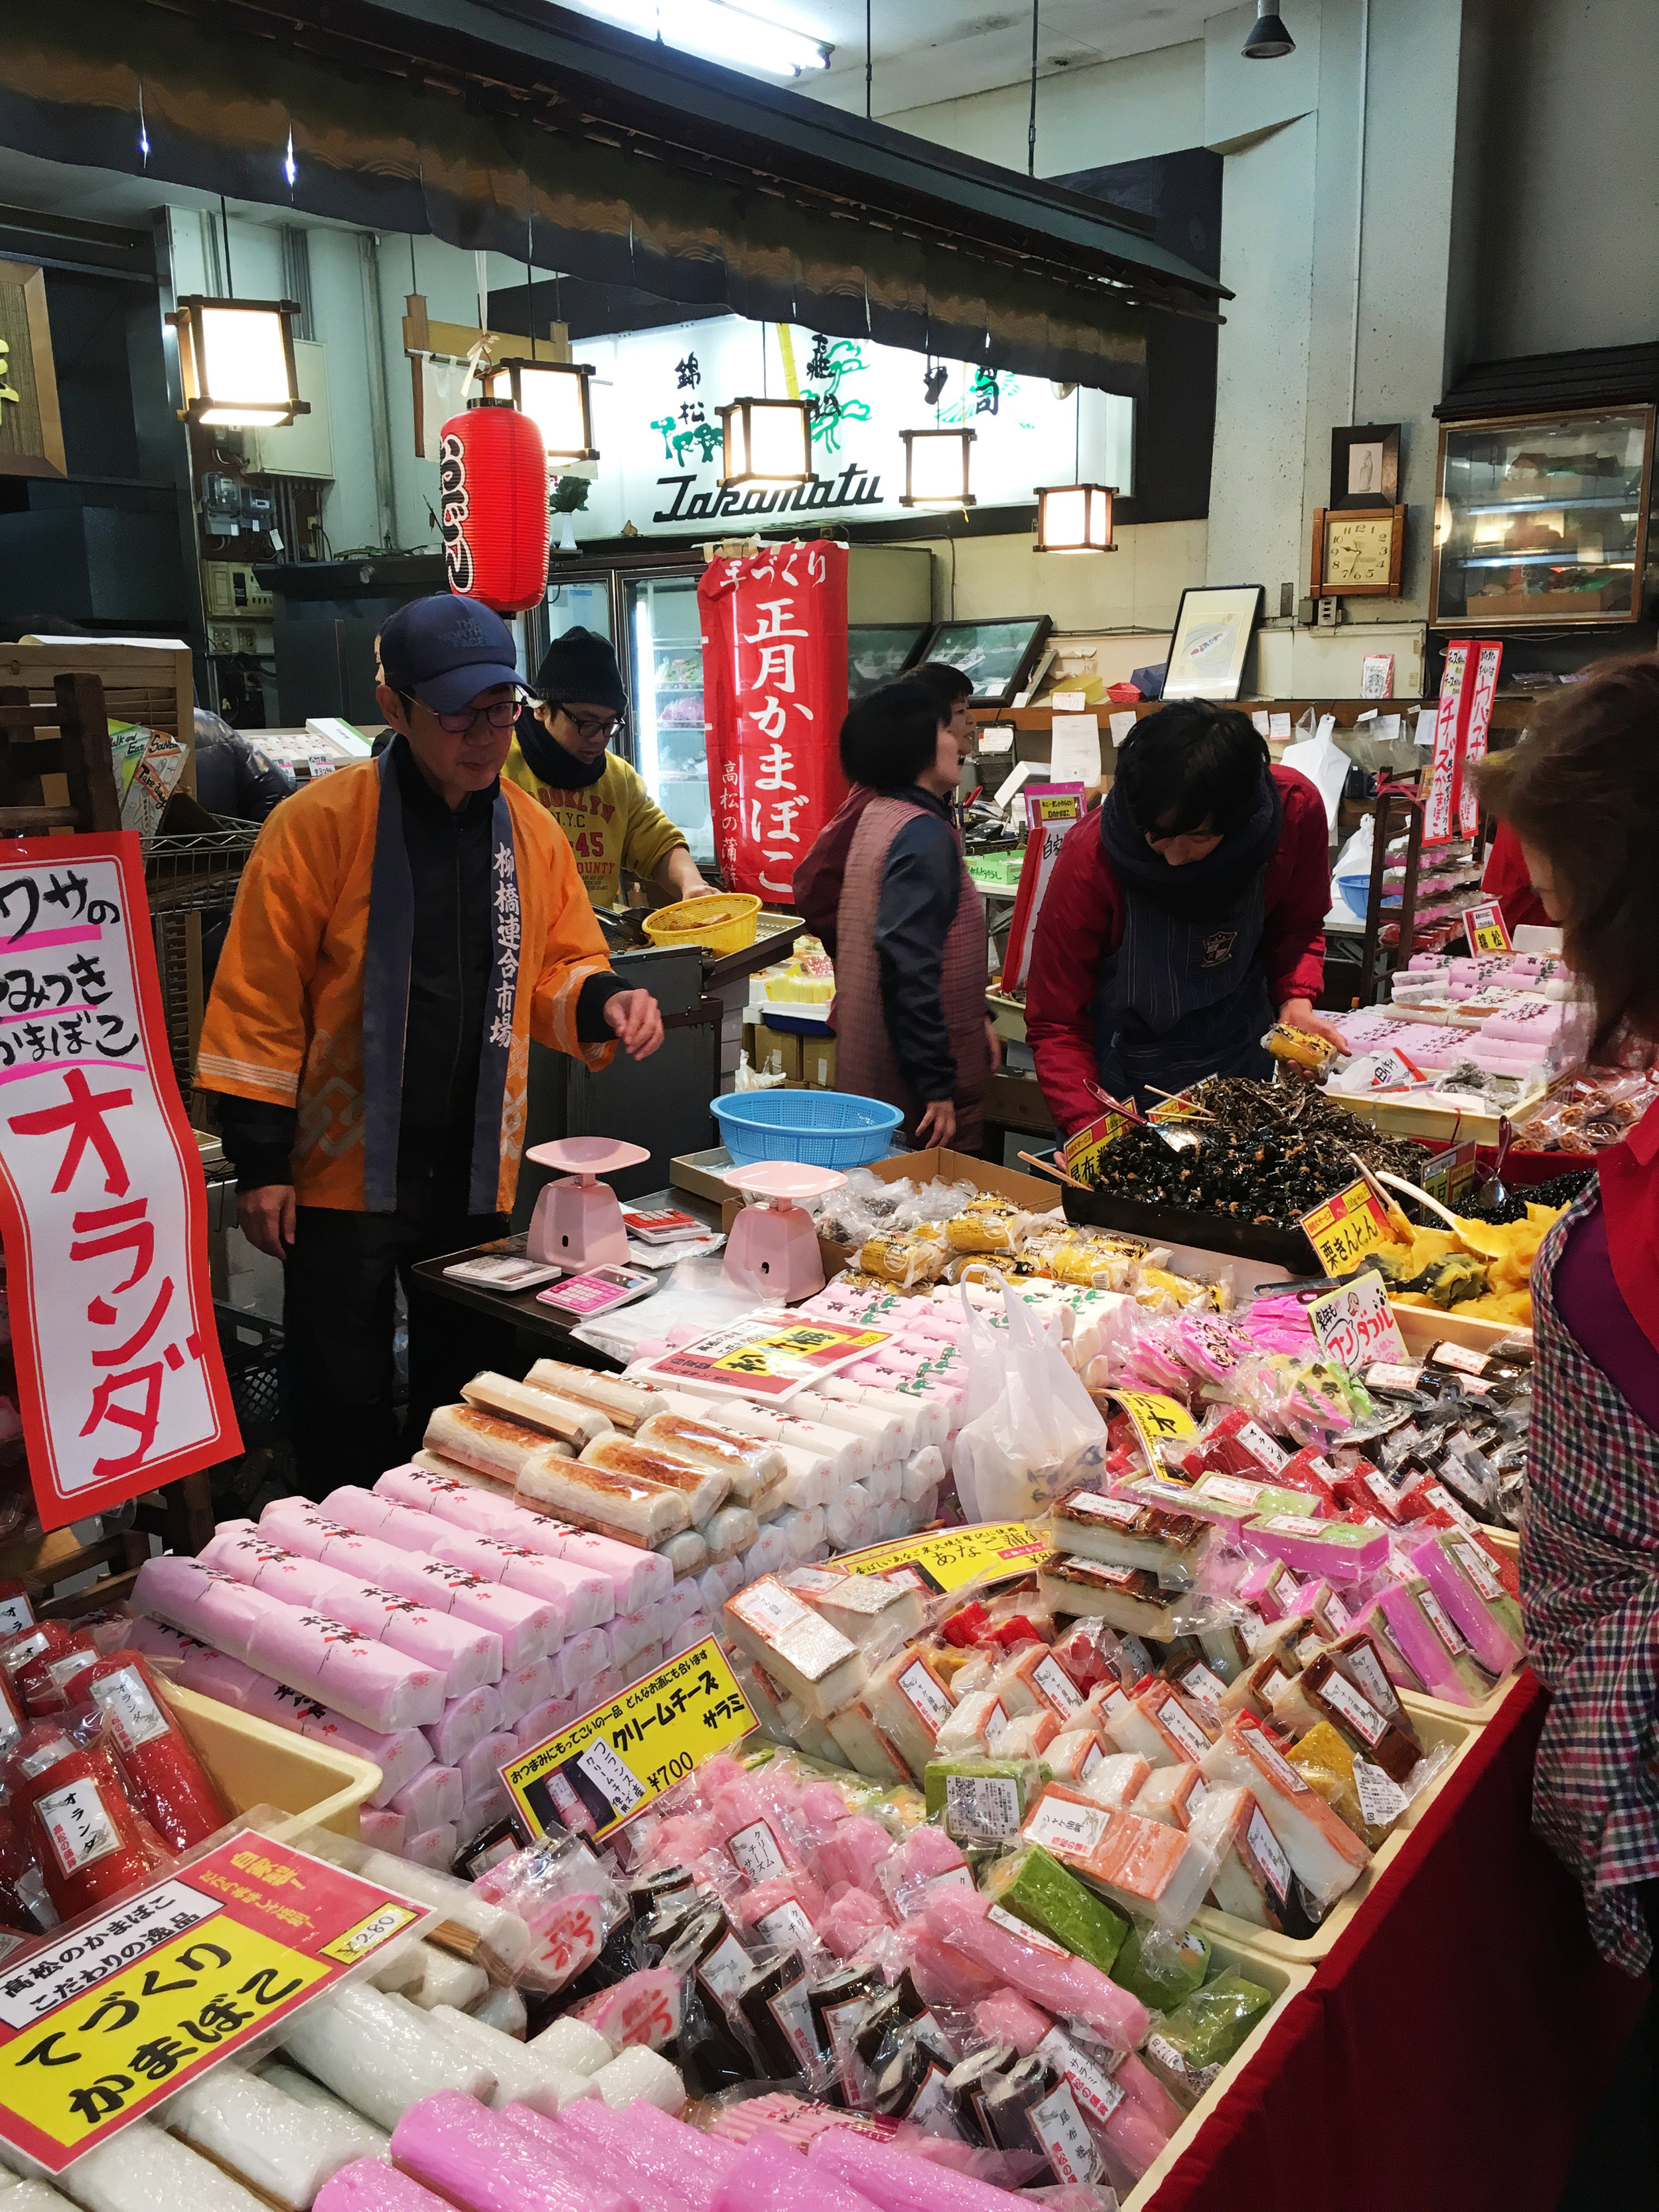 At Yanagibashi Market in Fukuoka